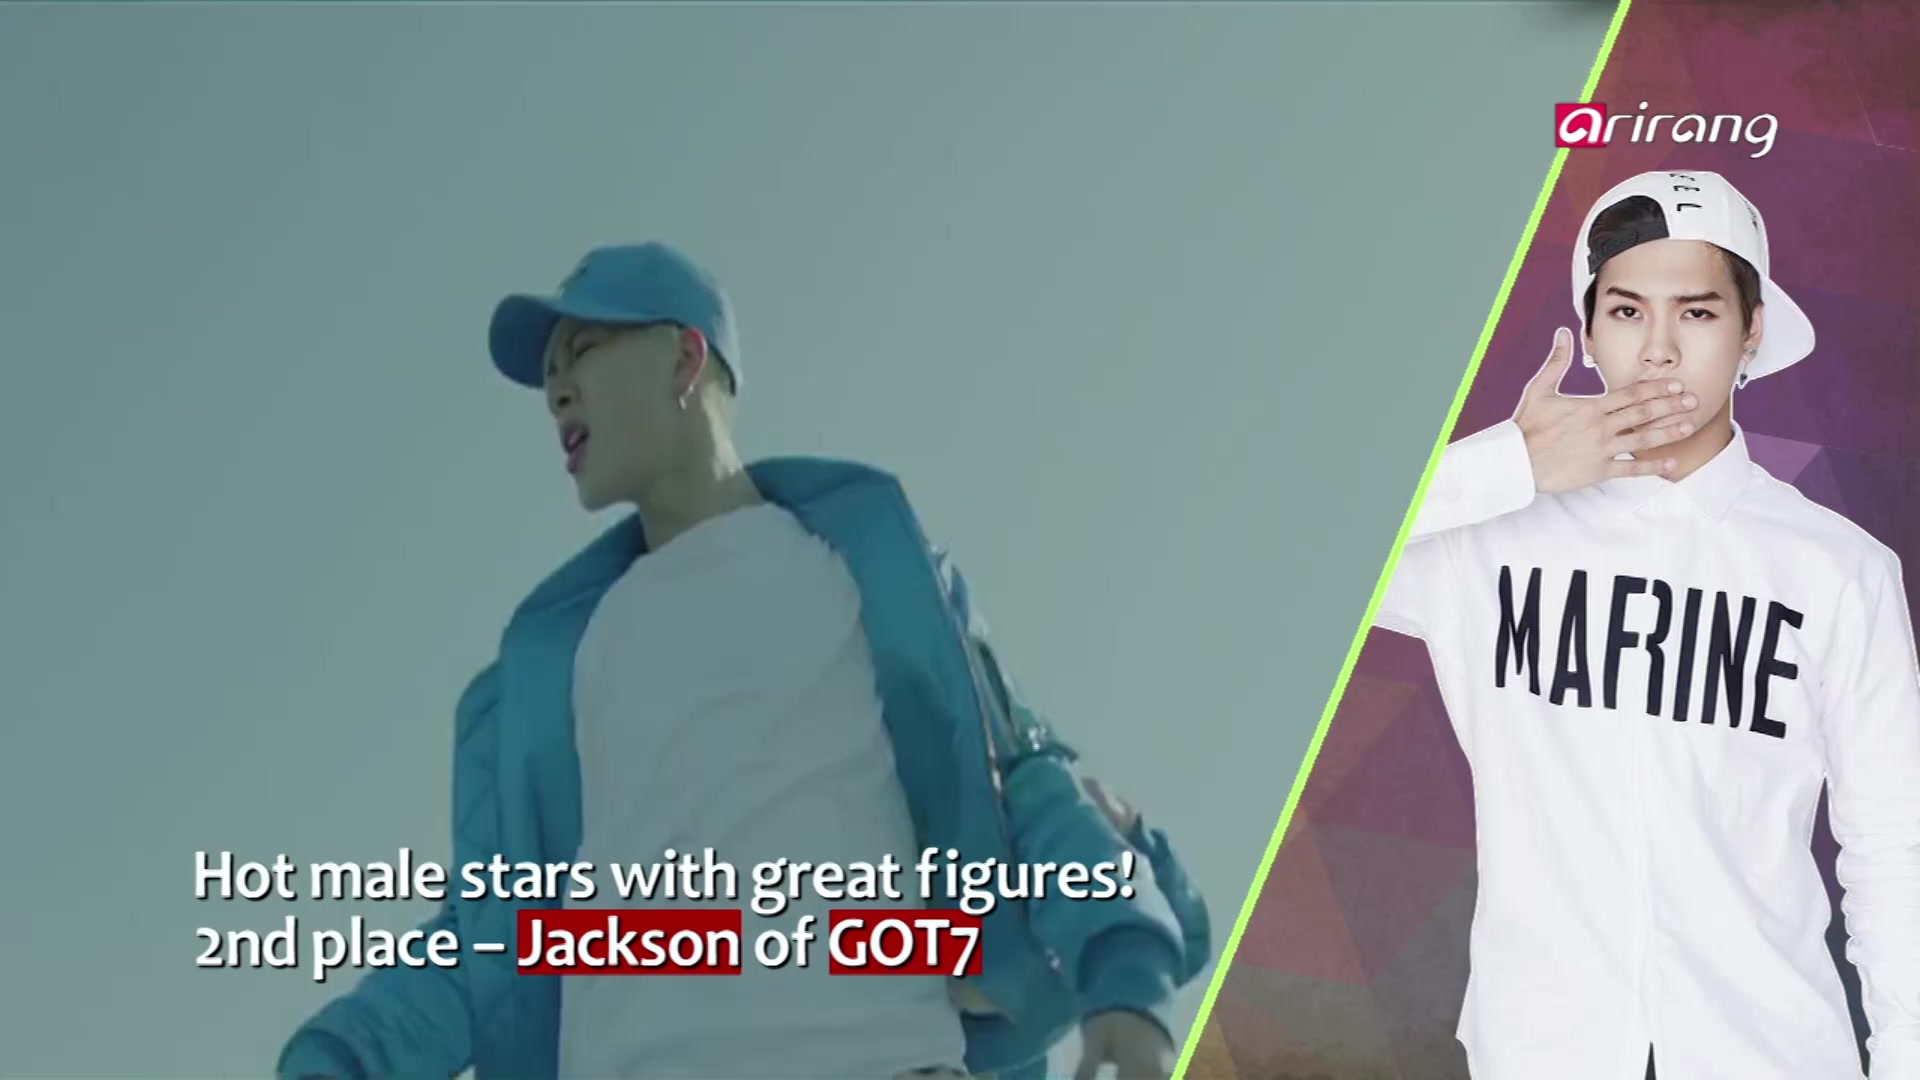 Hottest Male Stars with Superb Figures - Star Charts